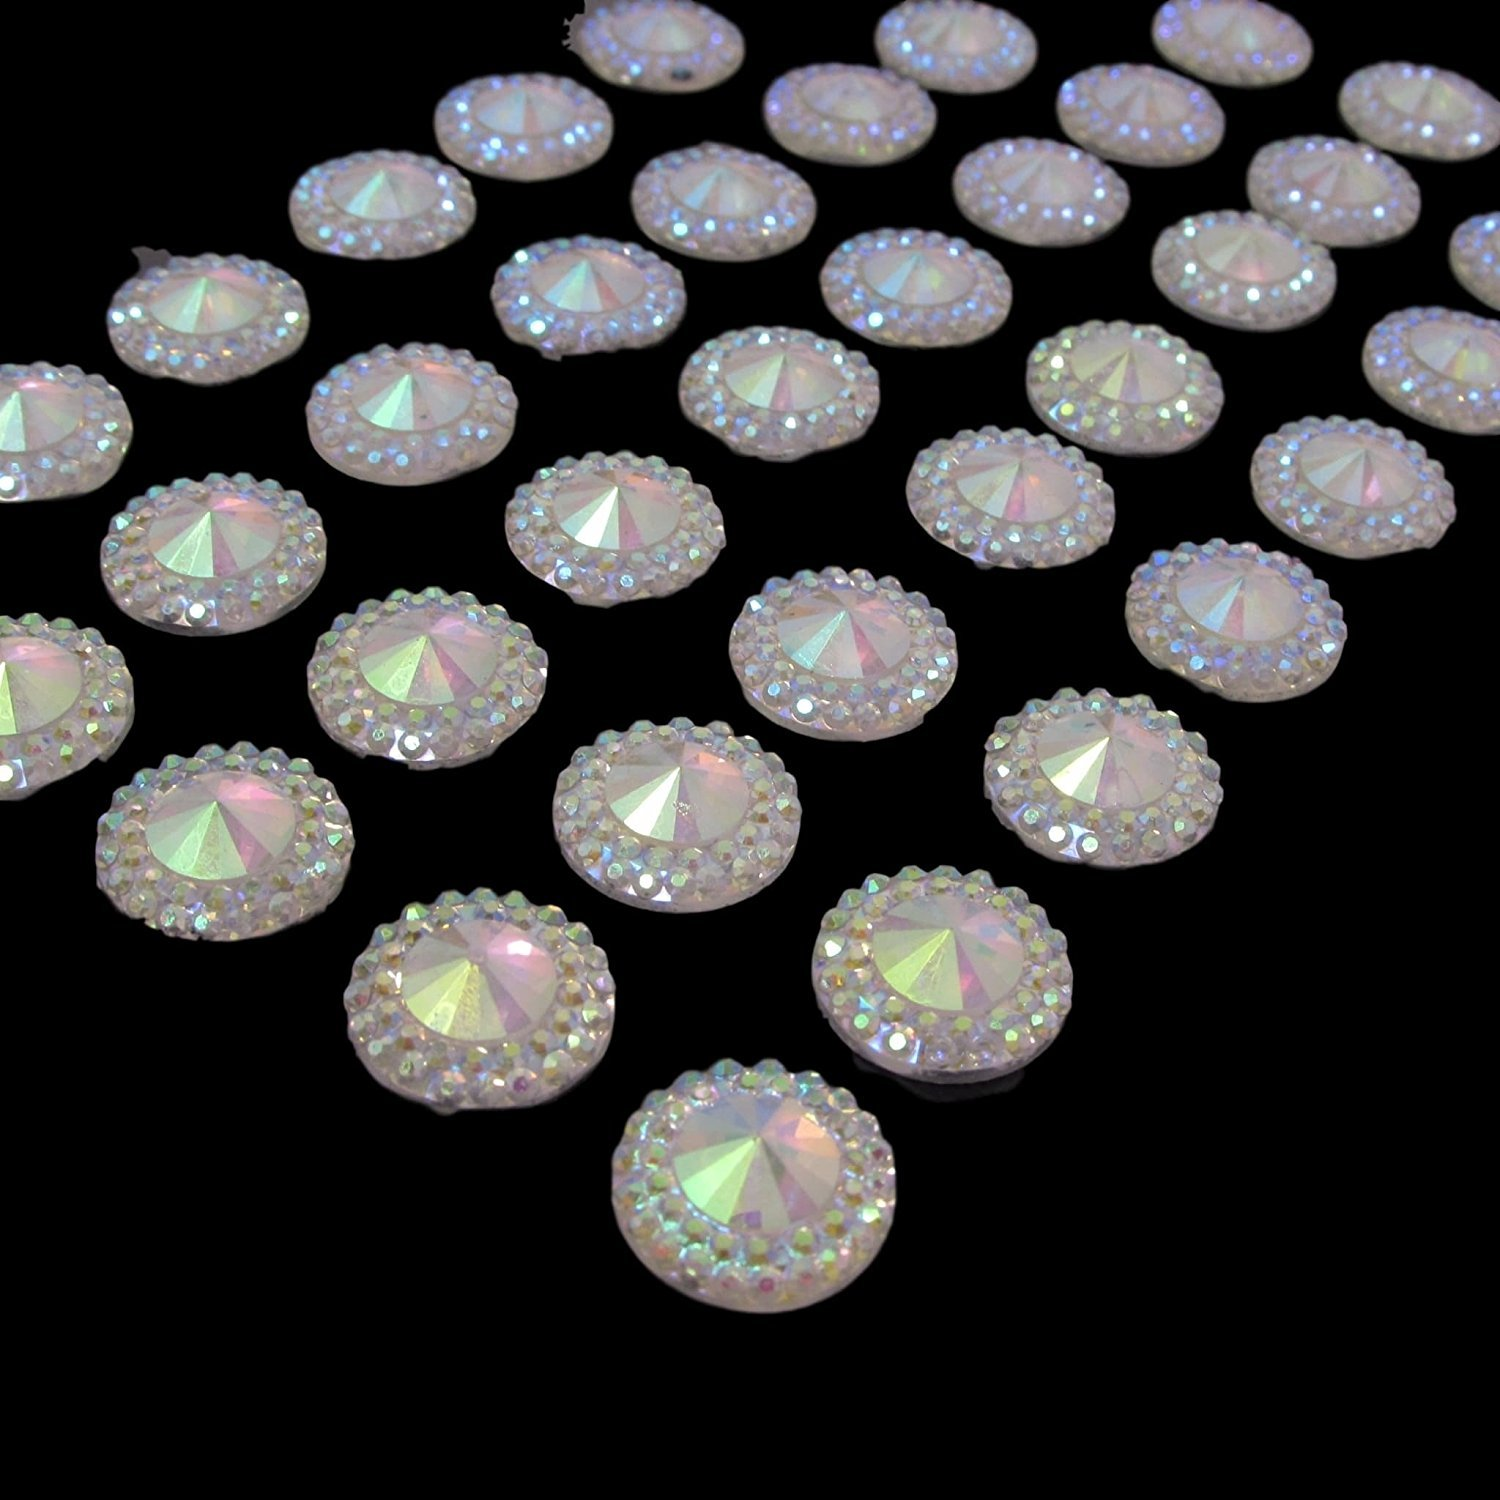 40 x Self Adhesive Gems Clear AB Round Diamante Rhinestones Resin Crystals Stick on Gems Card Making Embellishments For Crafts Syntego